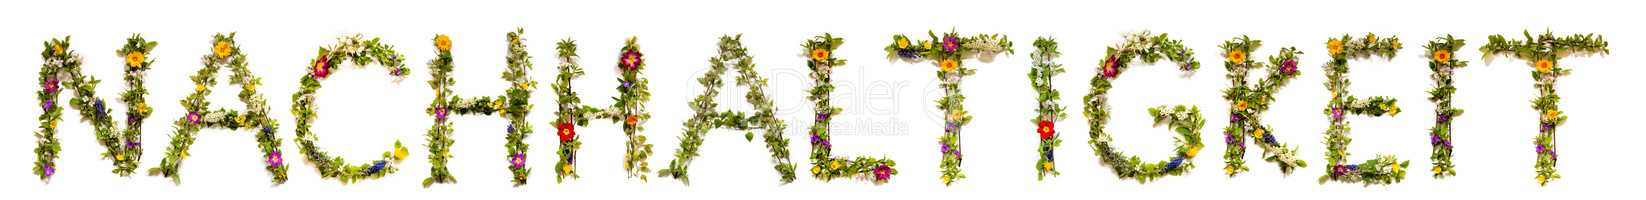 Flower And Blossom Letter Building Word Nachhaltigkeit Means Sustainability